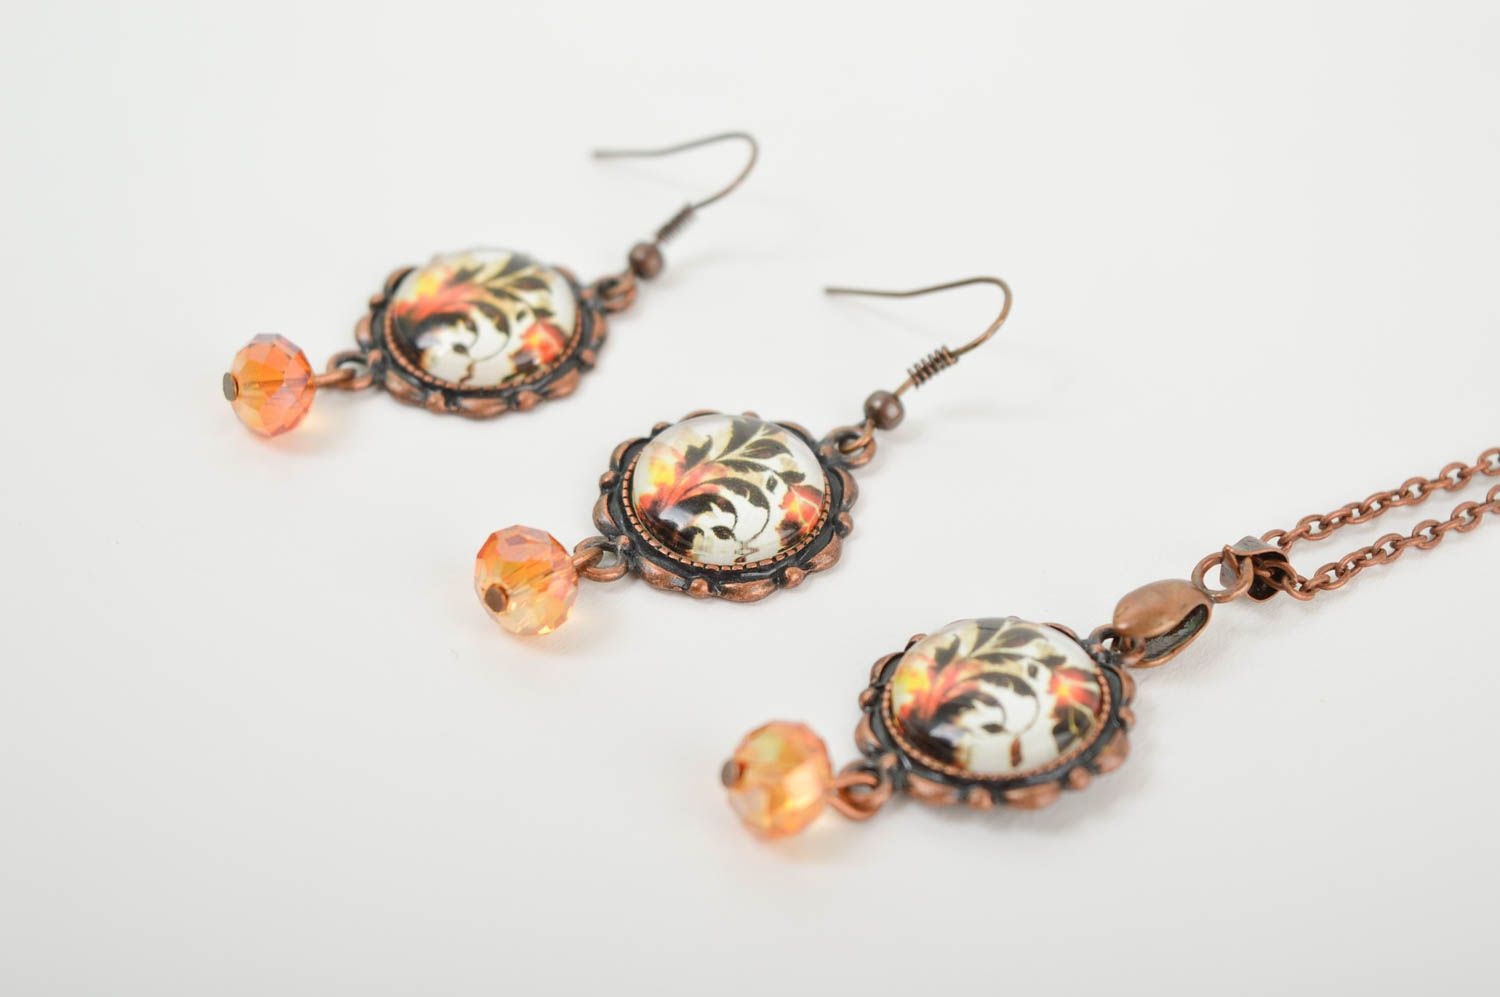 Handmade metal jewelry set glass bead earrings pendant necklace gifts for her photo 3